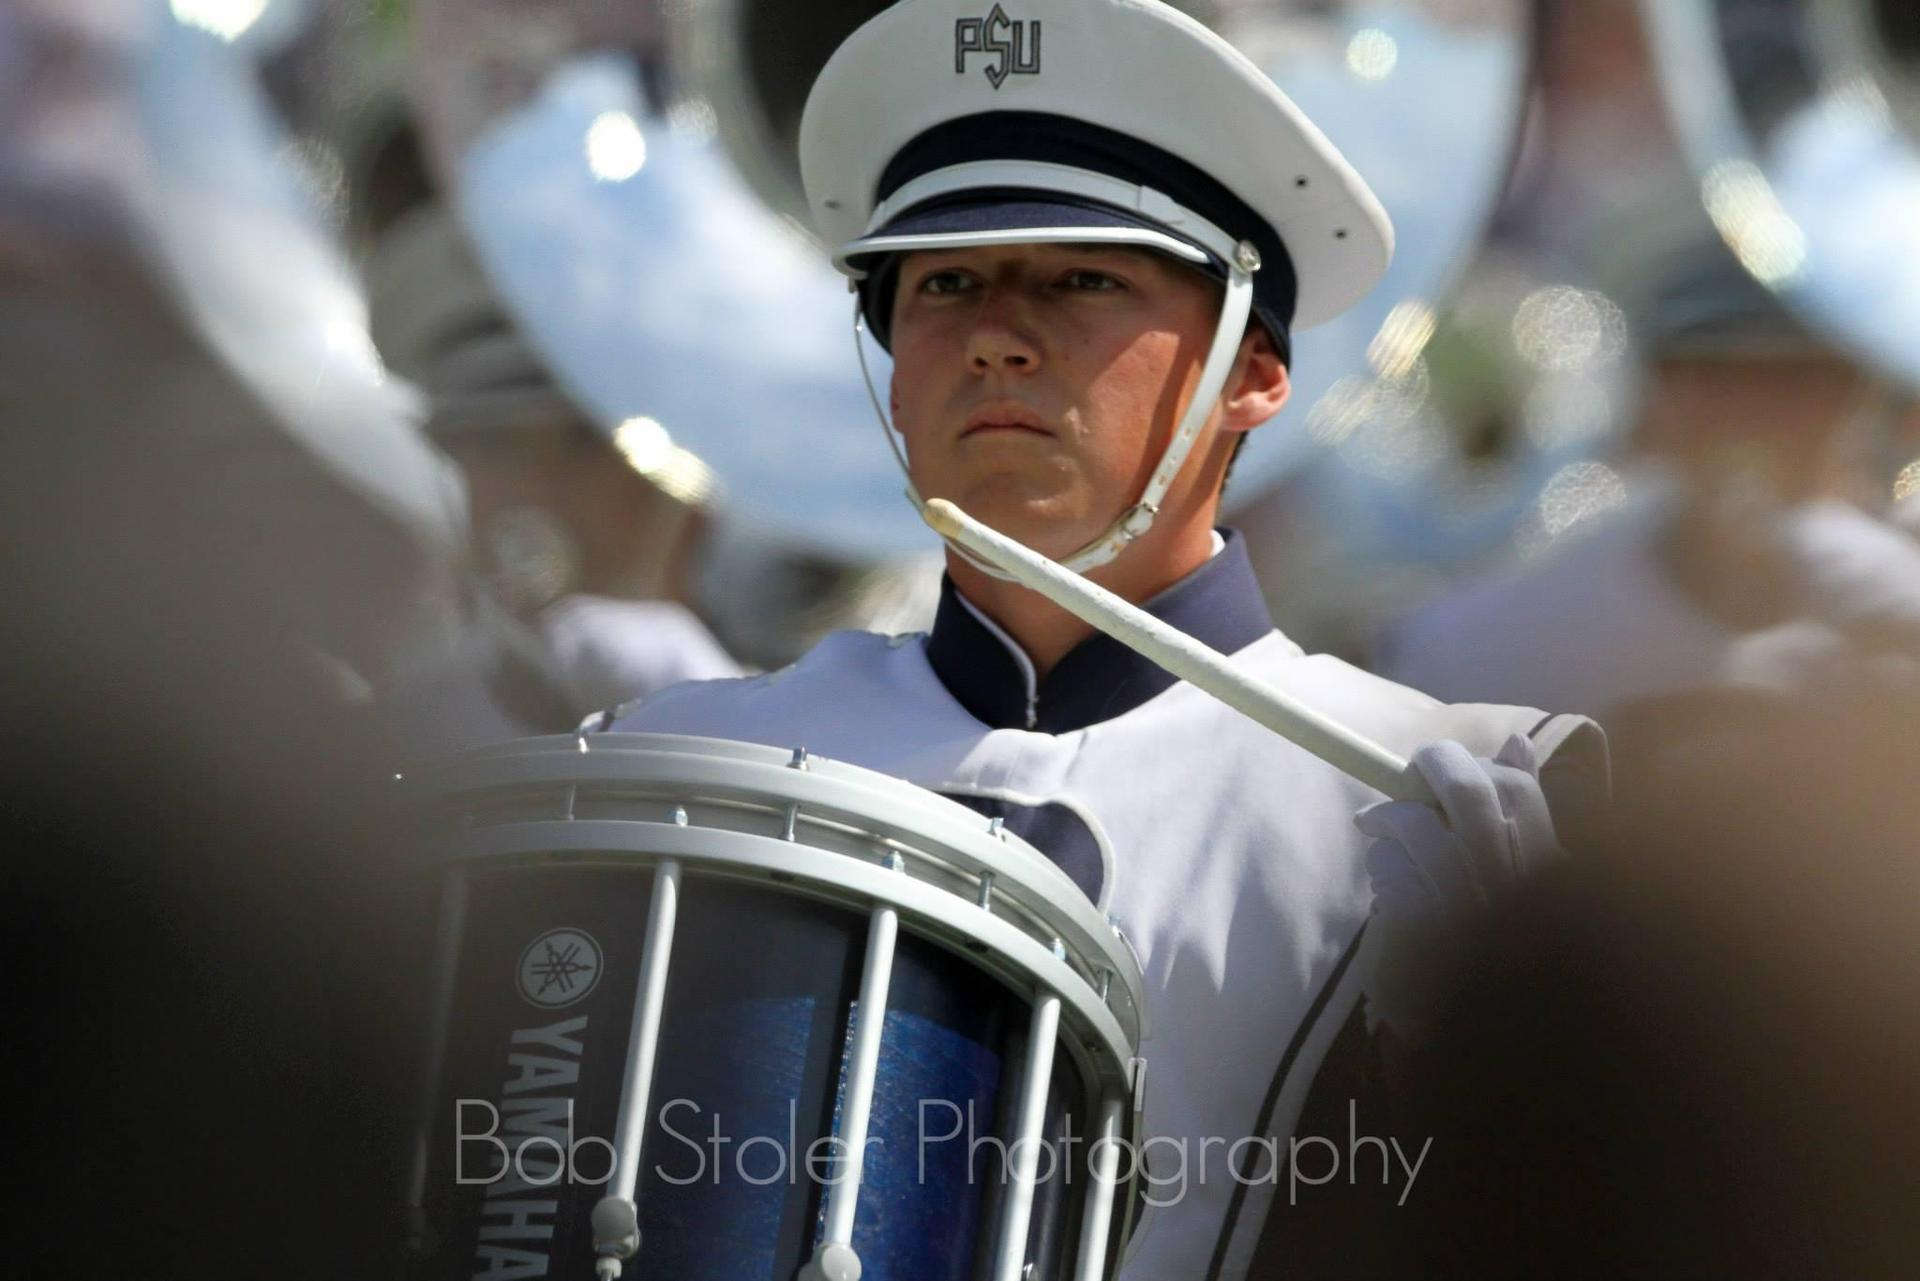 Ryan Carty in the Penn State Blue Band